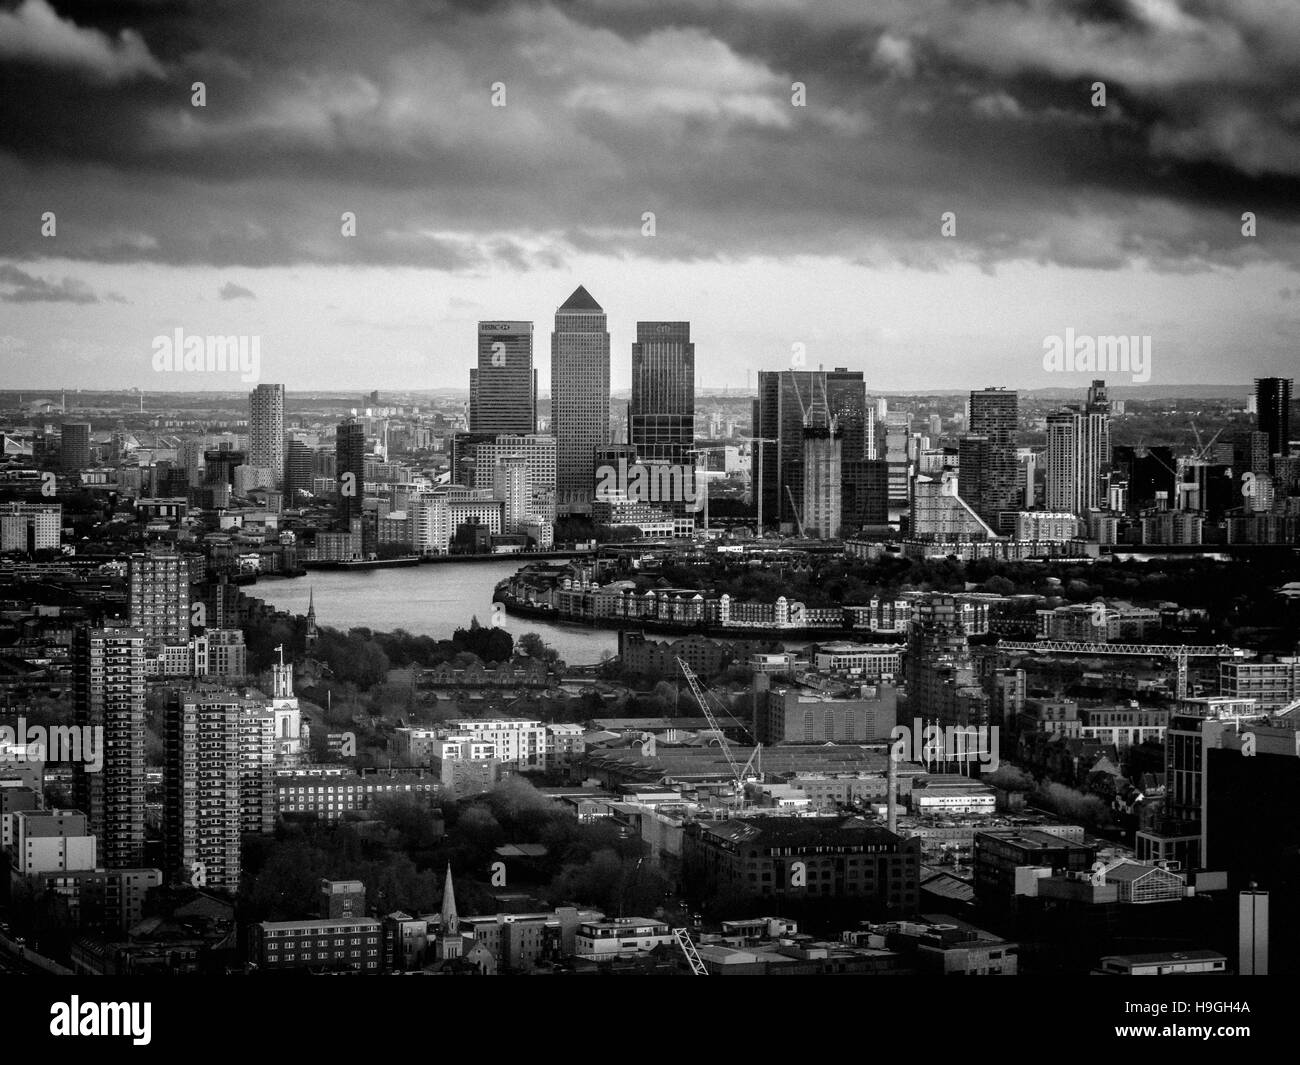 Canary Wharf and River Thames, London, UK. Stock Photo